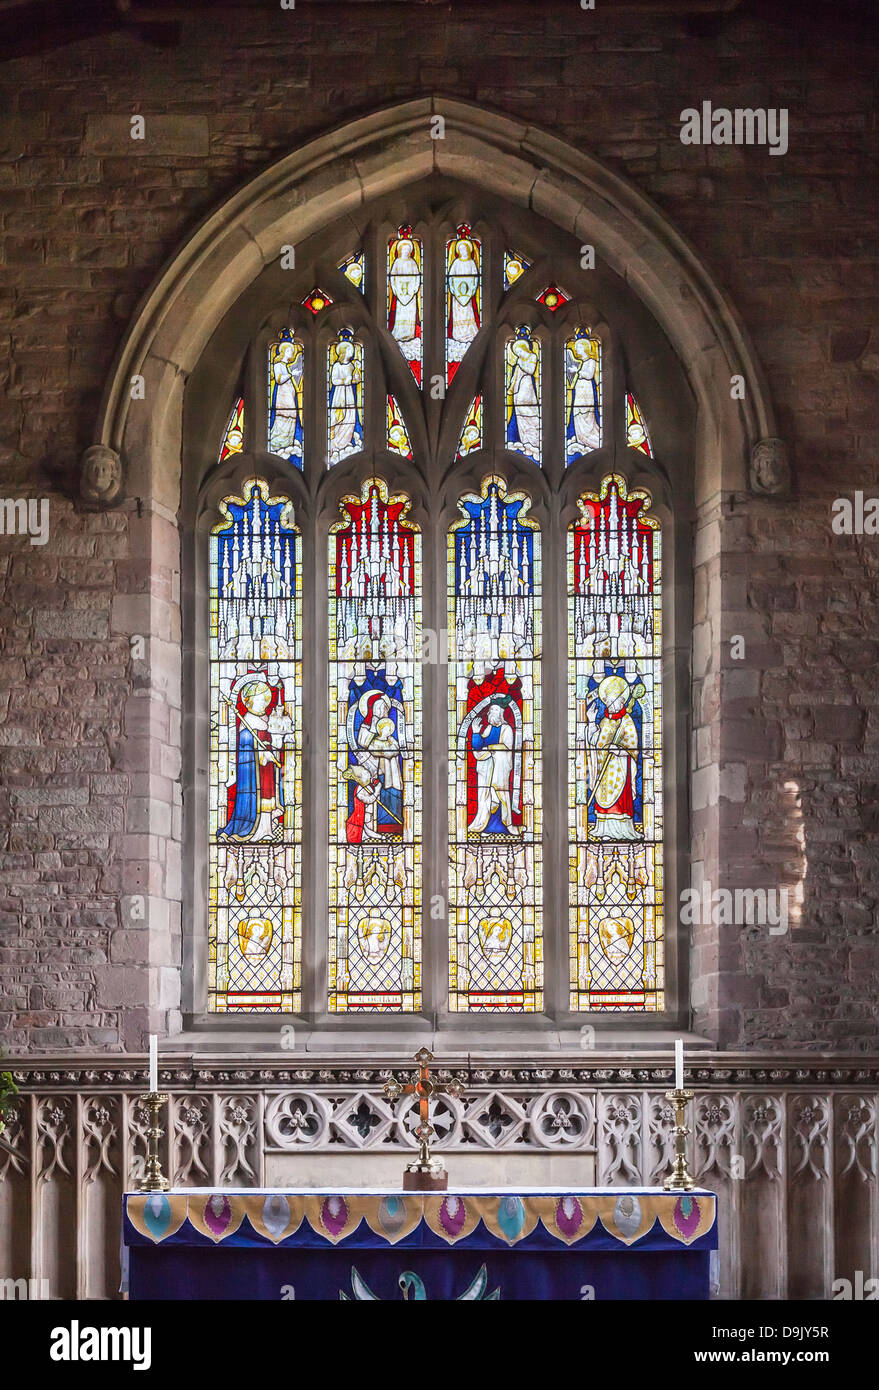 St Mary's Church, Ross-on-Wye, Herefordshire, England, stained glass window - Stock Image